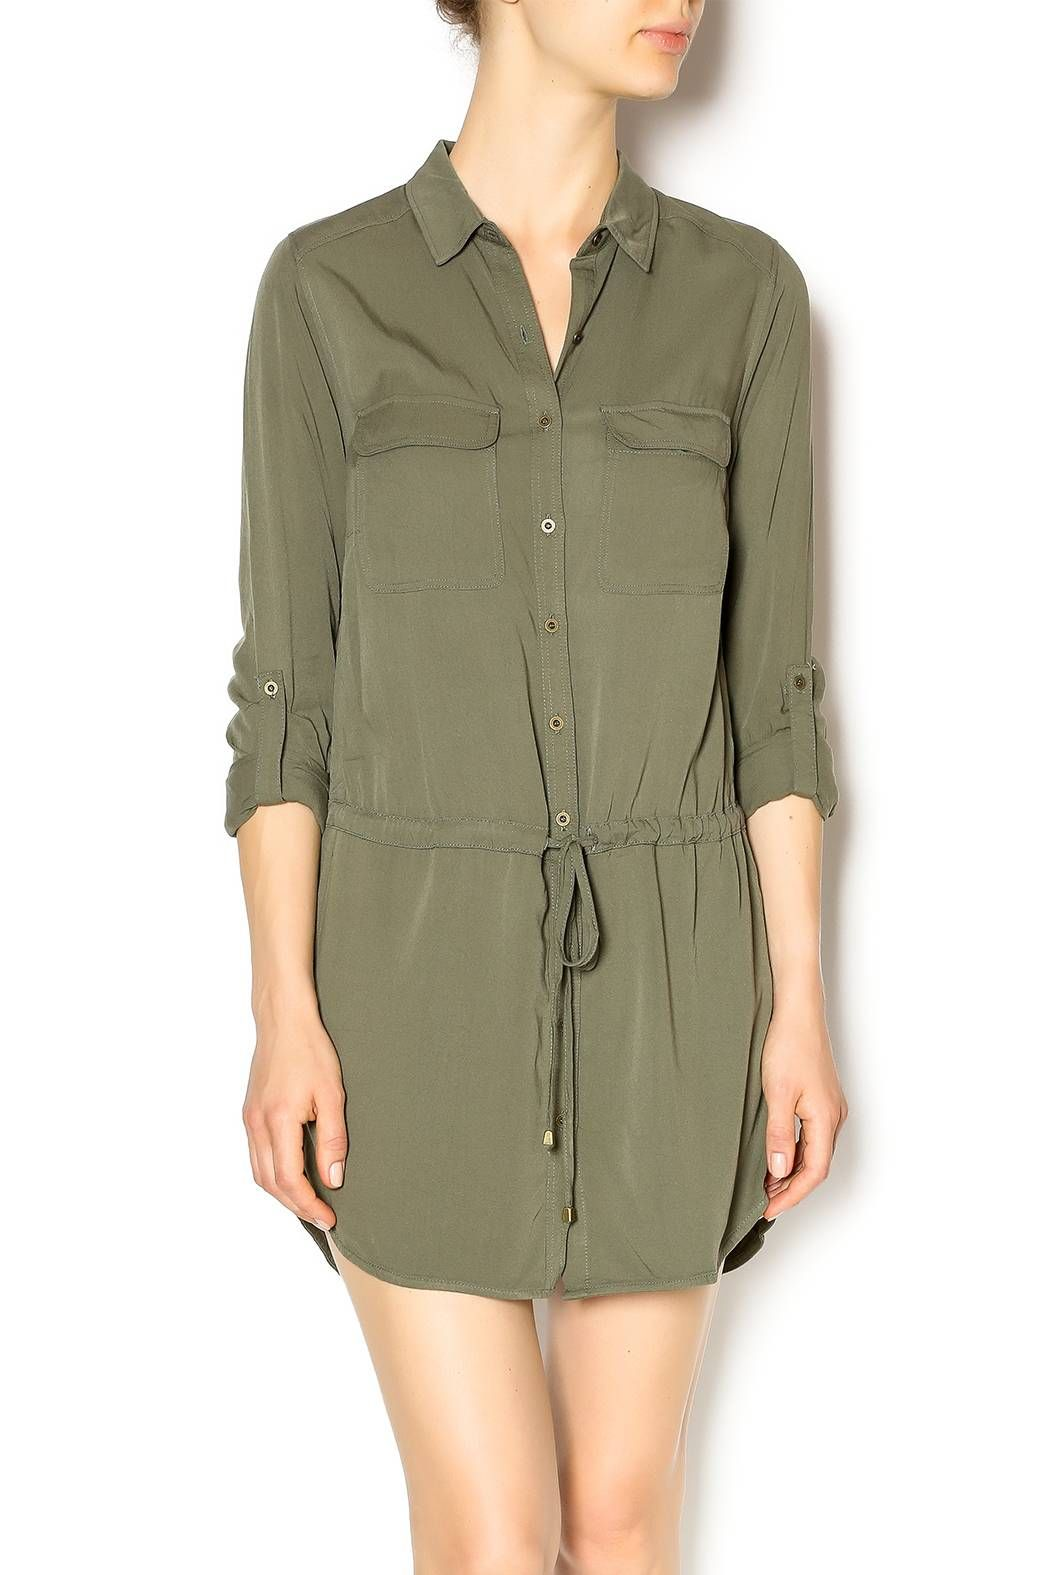 Staccato olive military dress military dresses drawstring waist